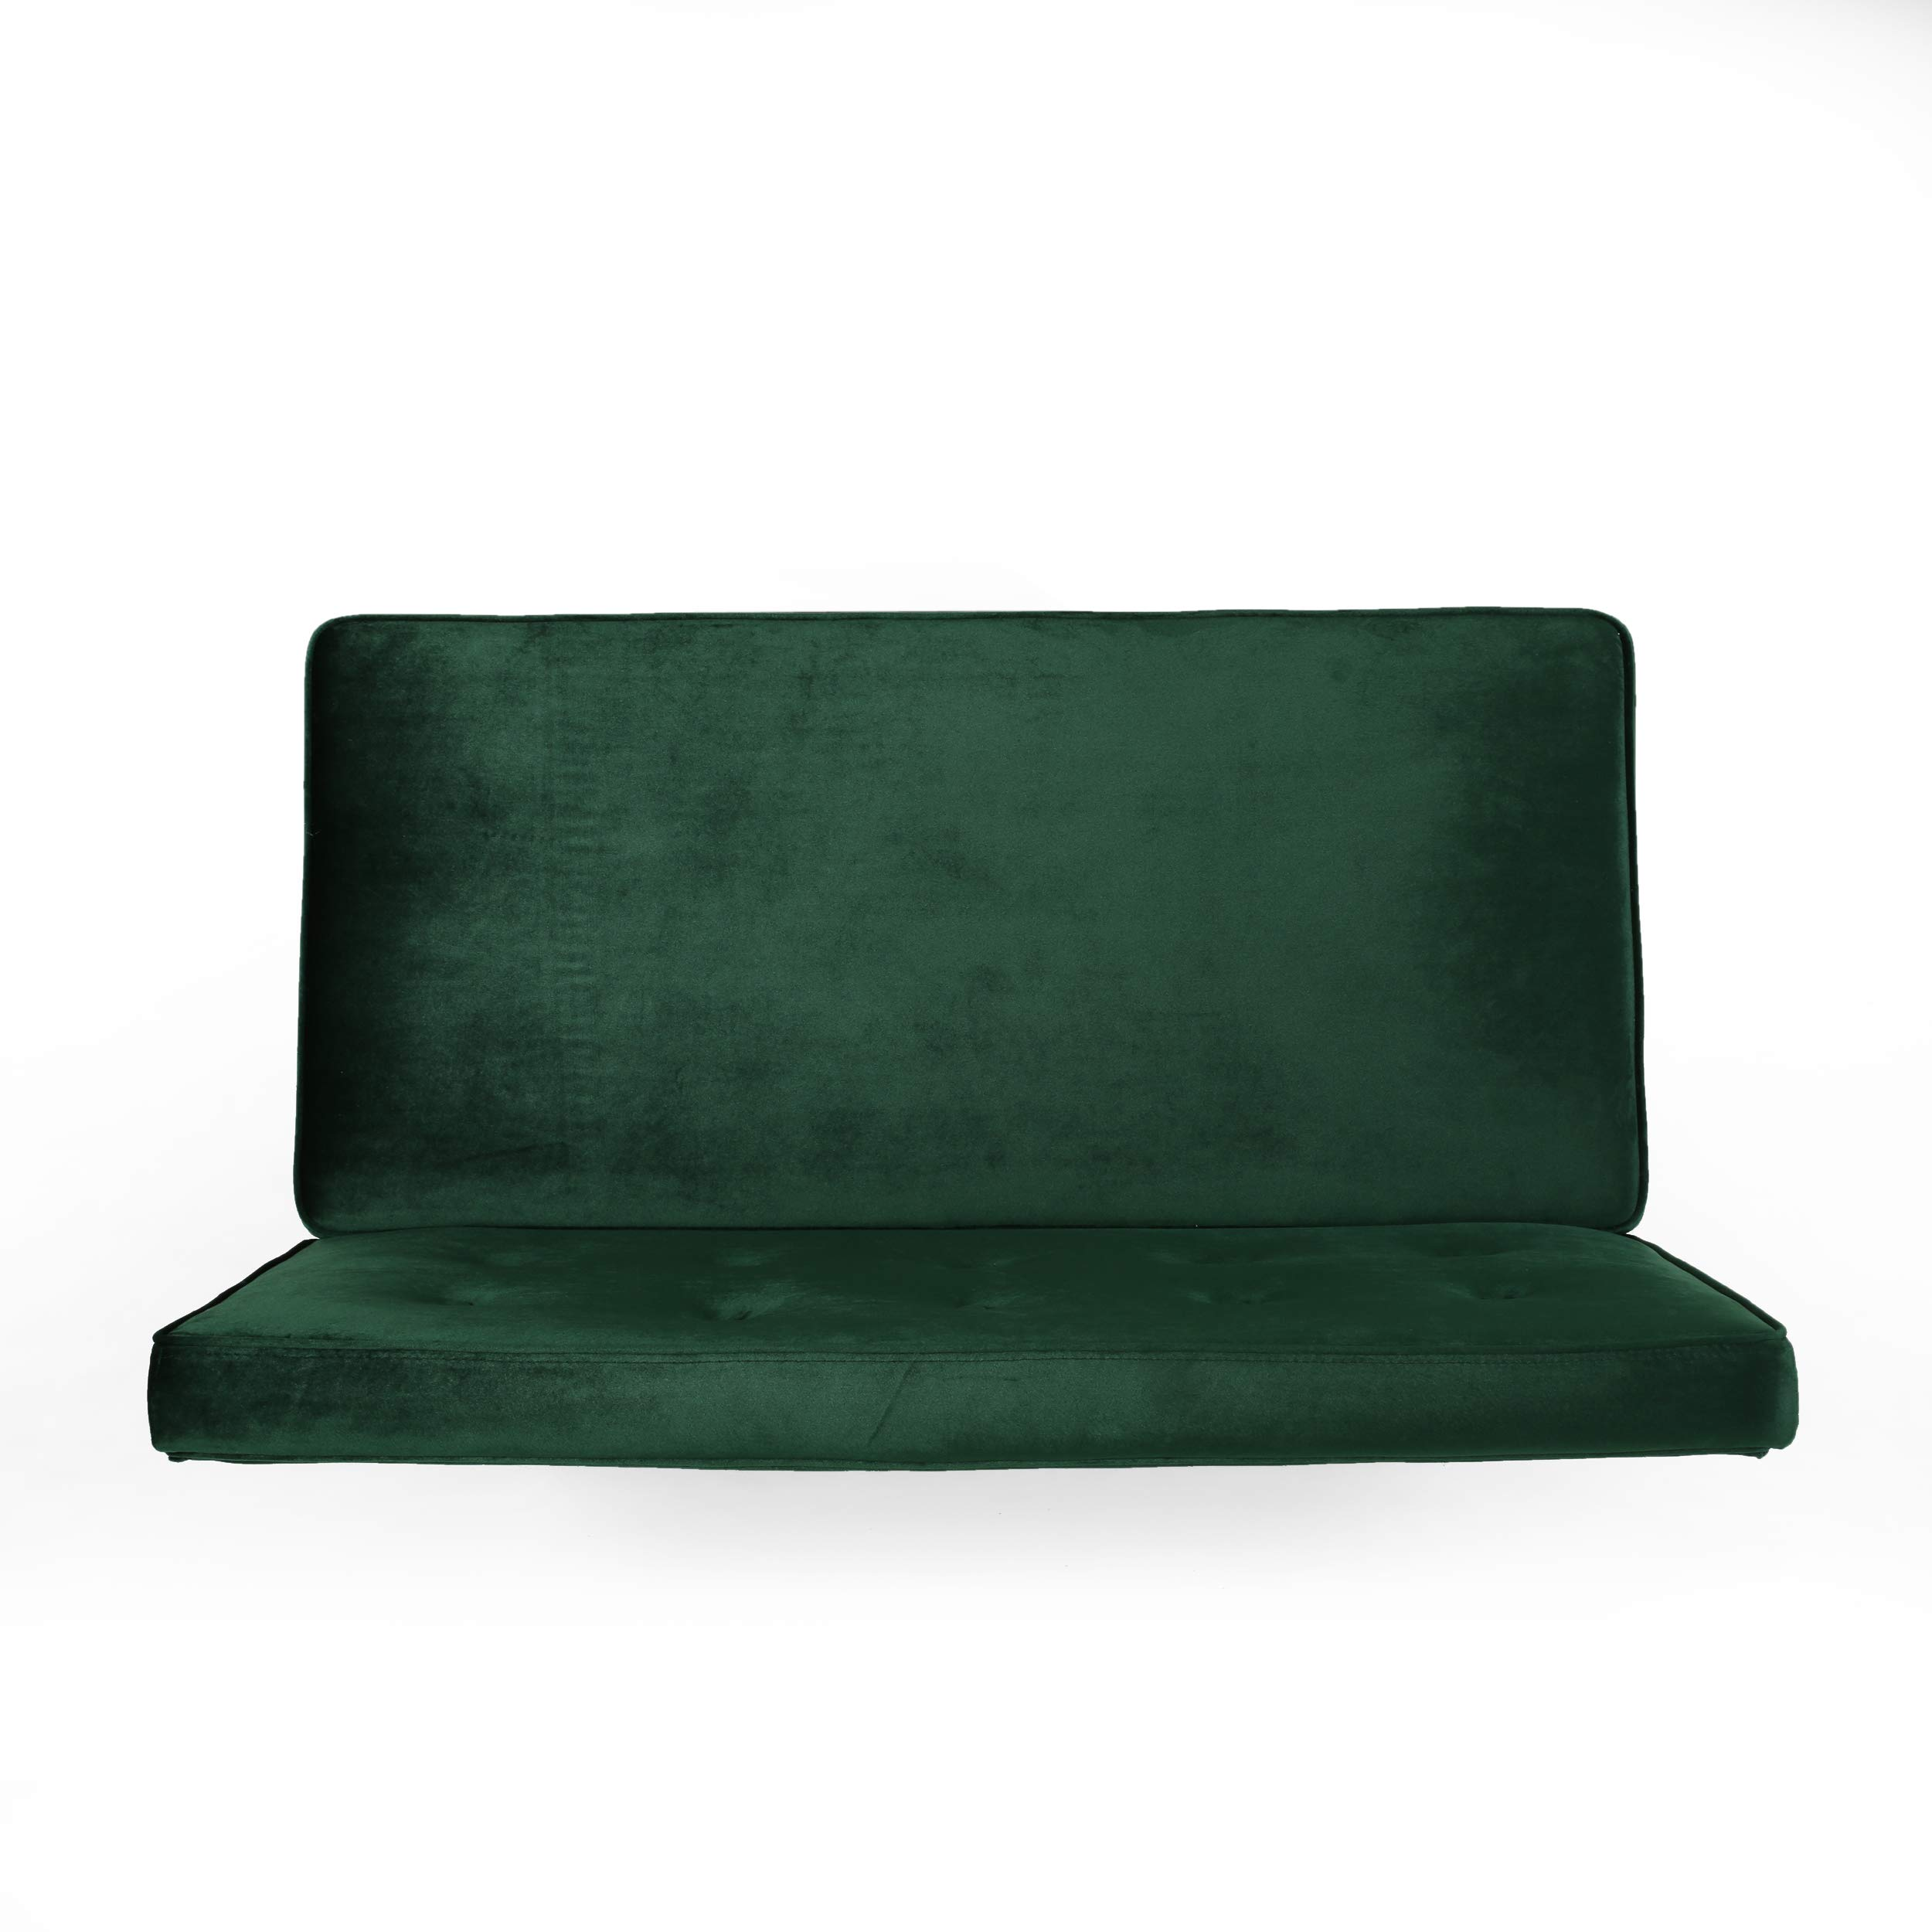 Beatrice Minimalist Dining Bench Settee with Tufted Velvet Cushion and Iron Legs - Emerald and Black by Great Deal Furniture (Image #6)